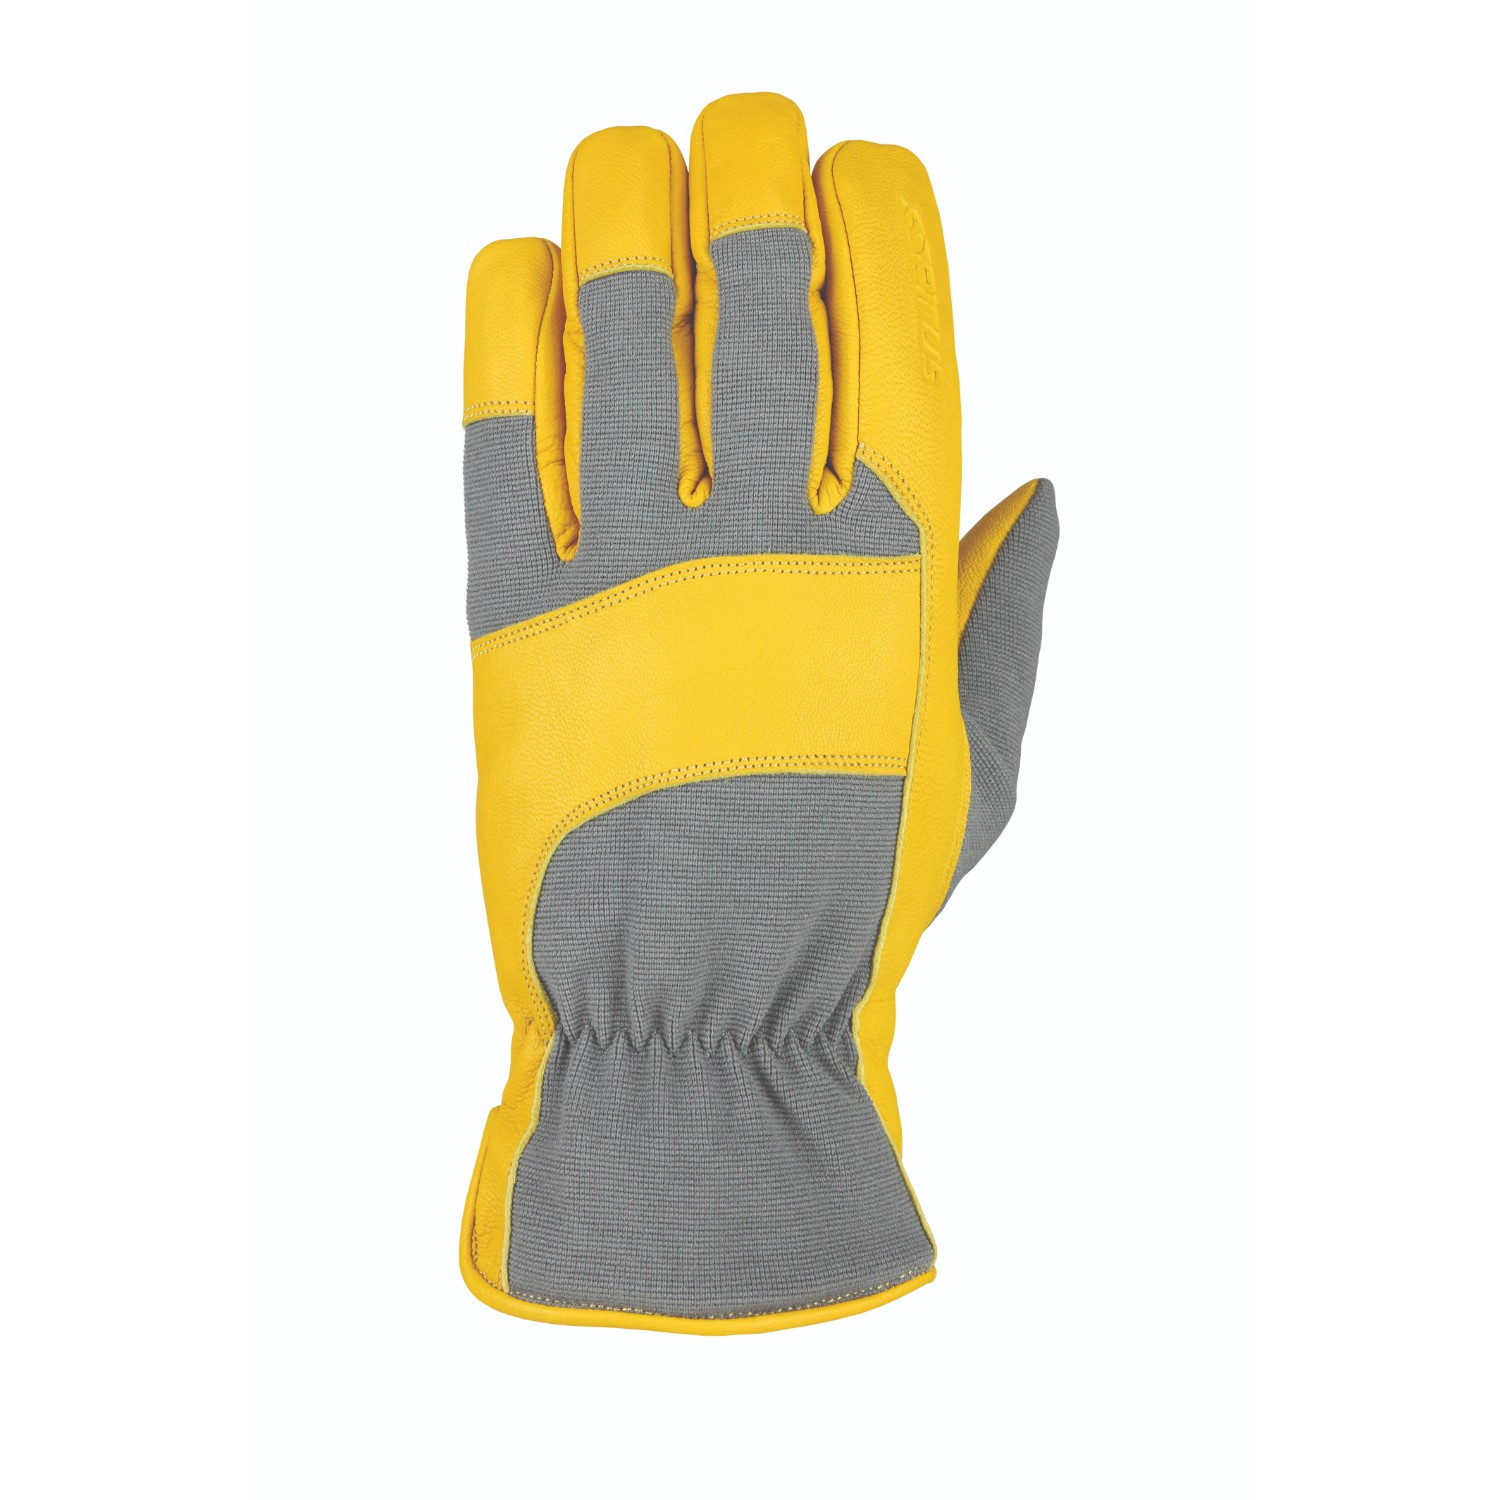 Heatwave Leather Glove Gray Tan Goatskin XL